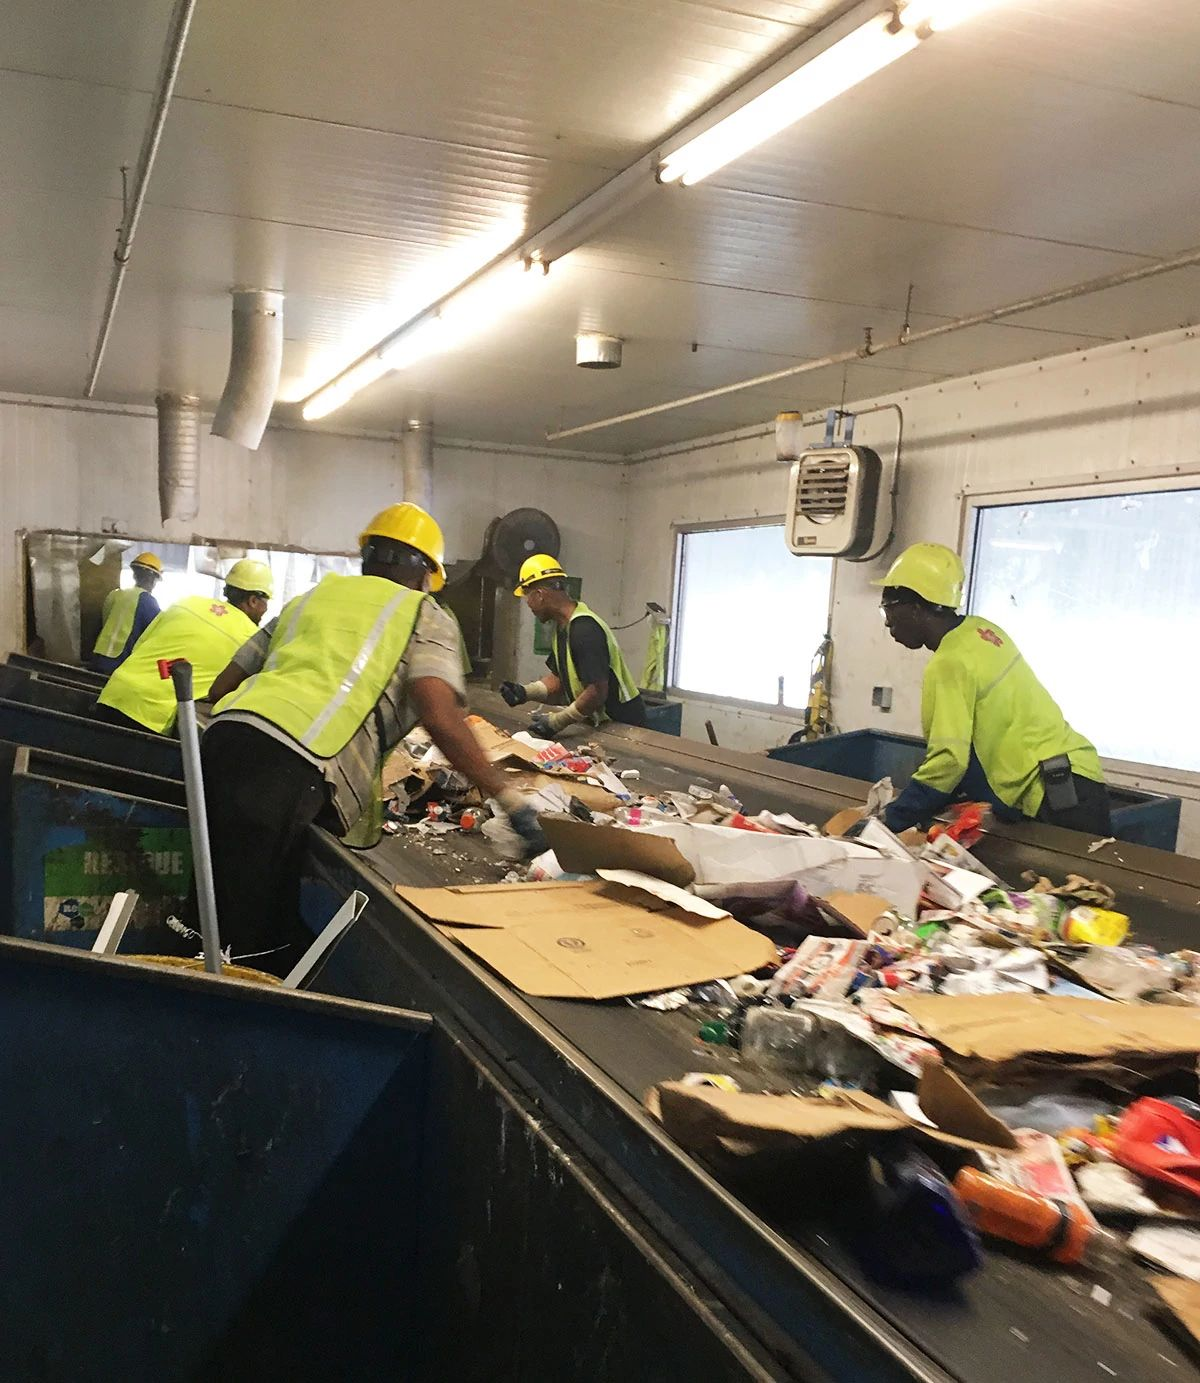 A recycling sorting line